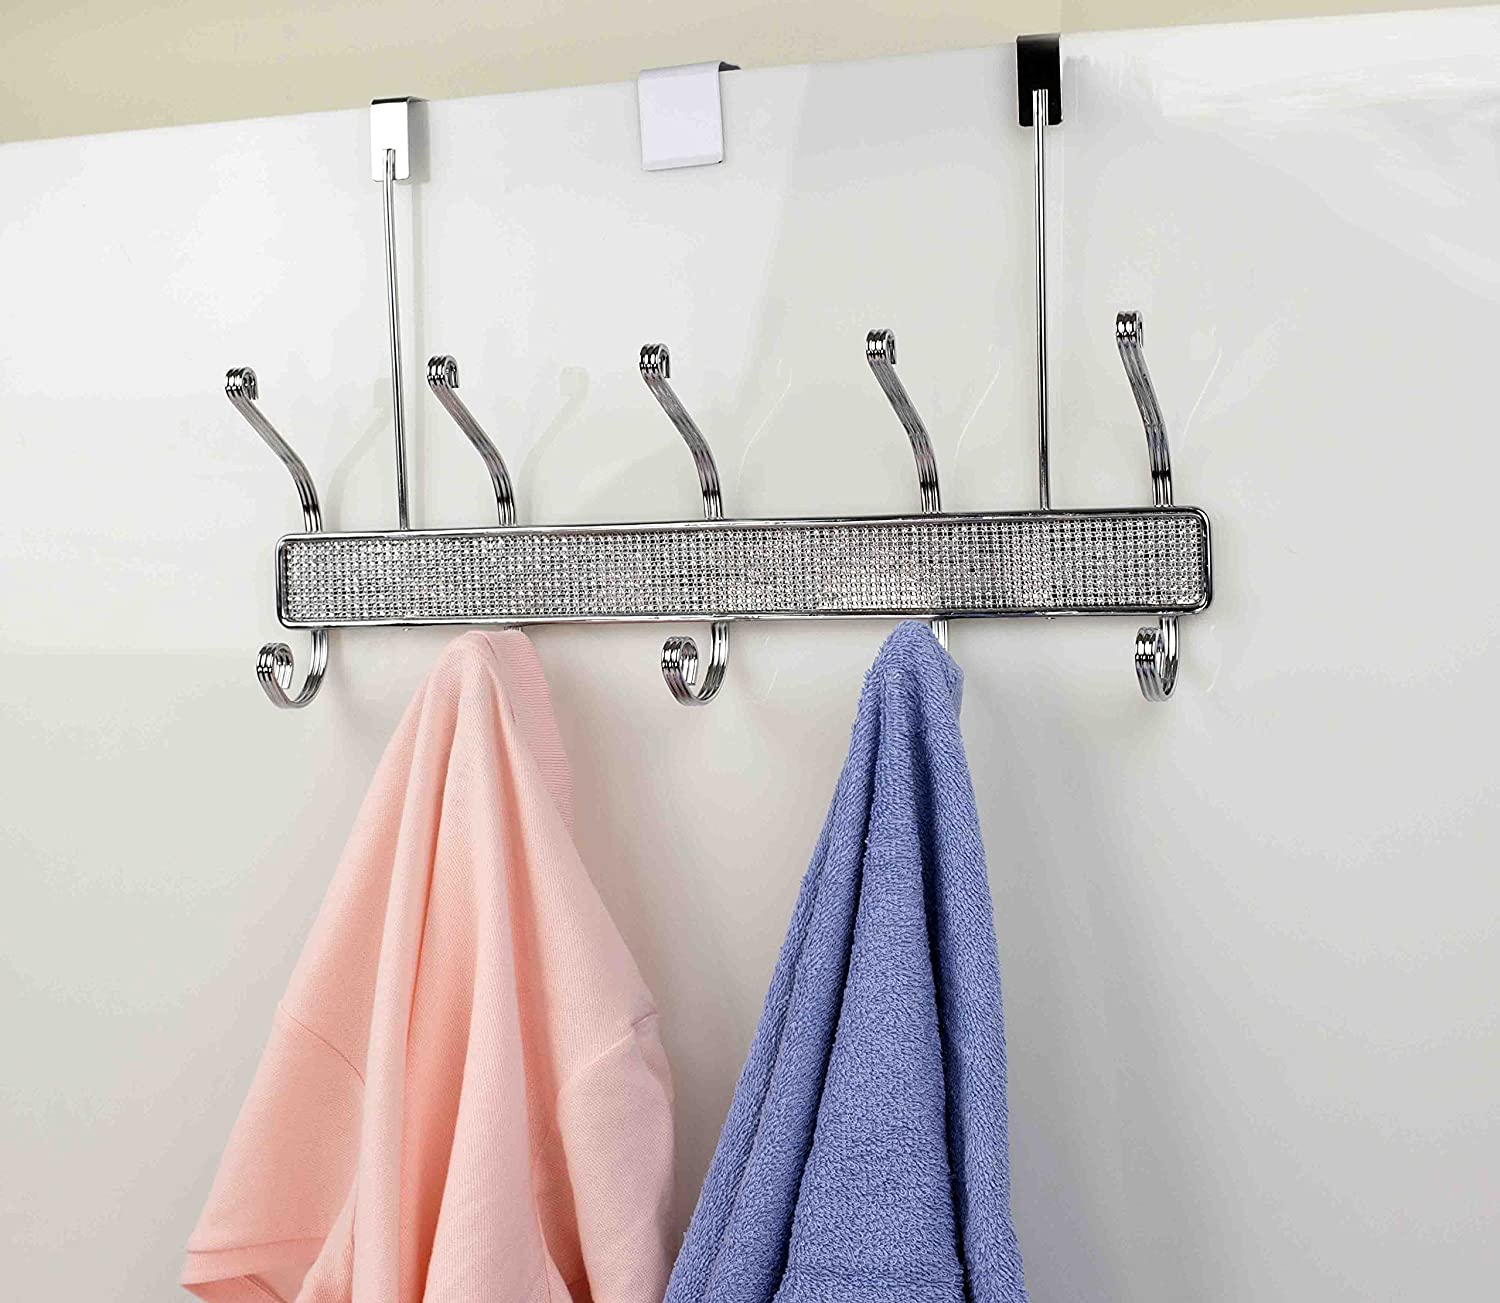 Home Basics Over the Door Crystal Diamond 5 Hook For Hanging Clothes, Coats, Towels, Robe or Bags, Satin Nickel